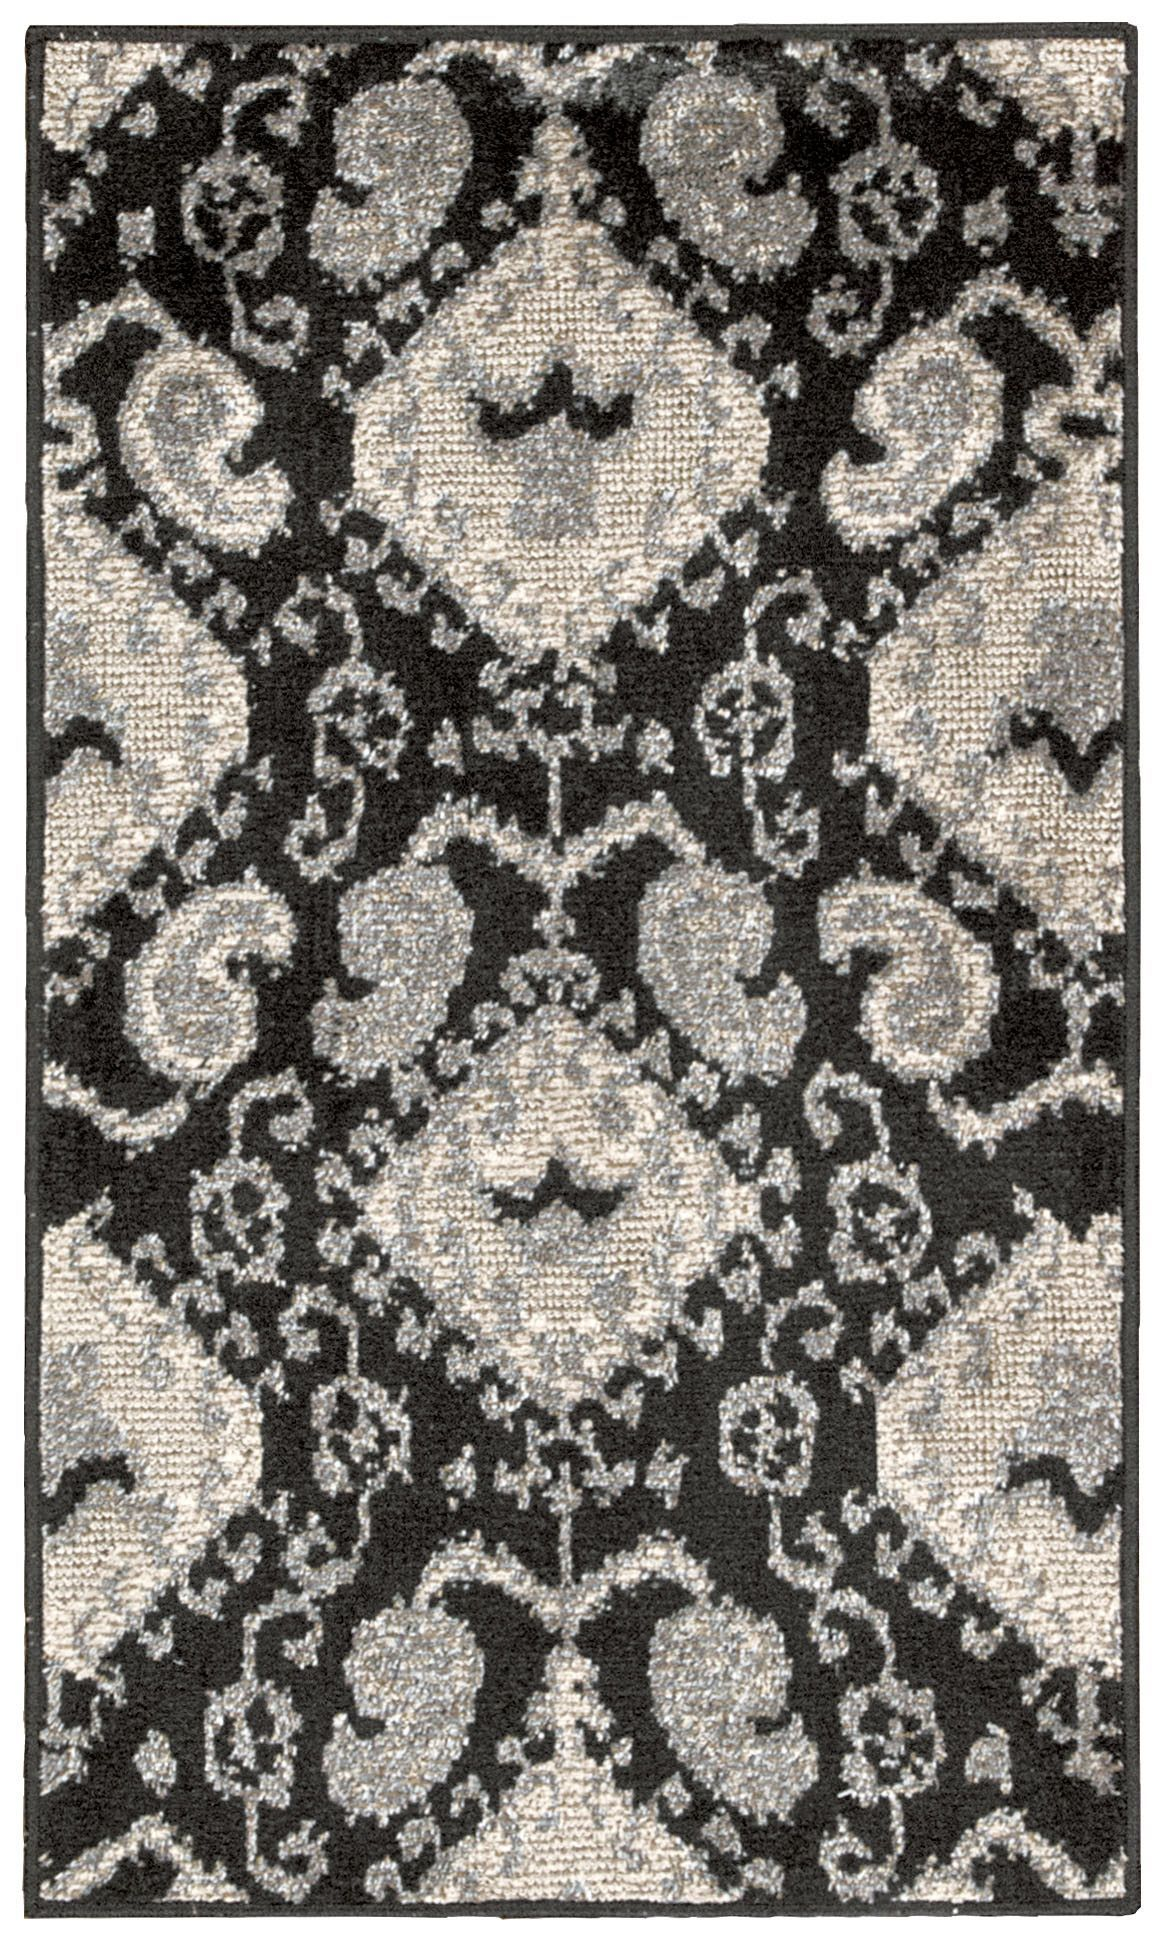 Kindred Black Outdoor Rug Products Pinterest